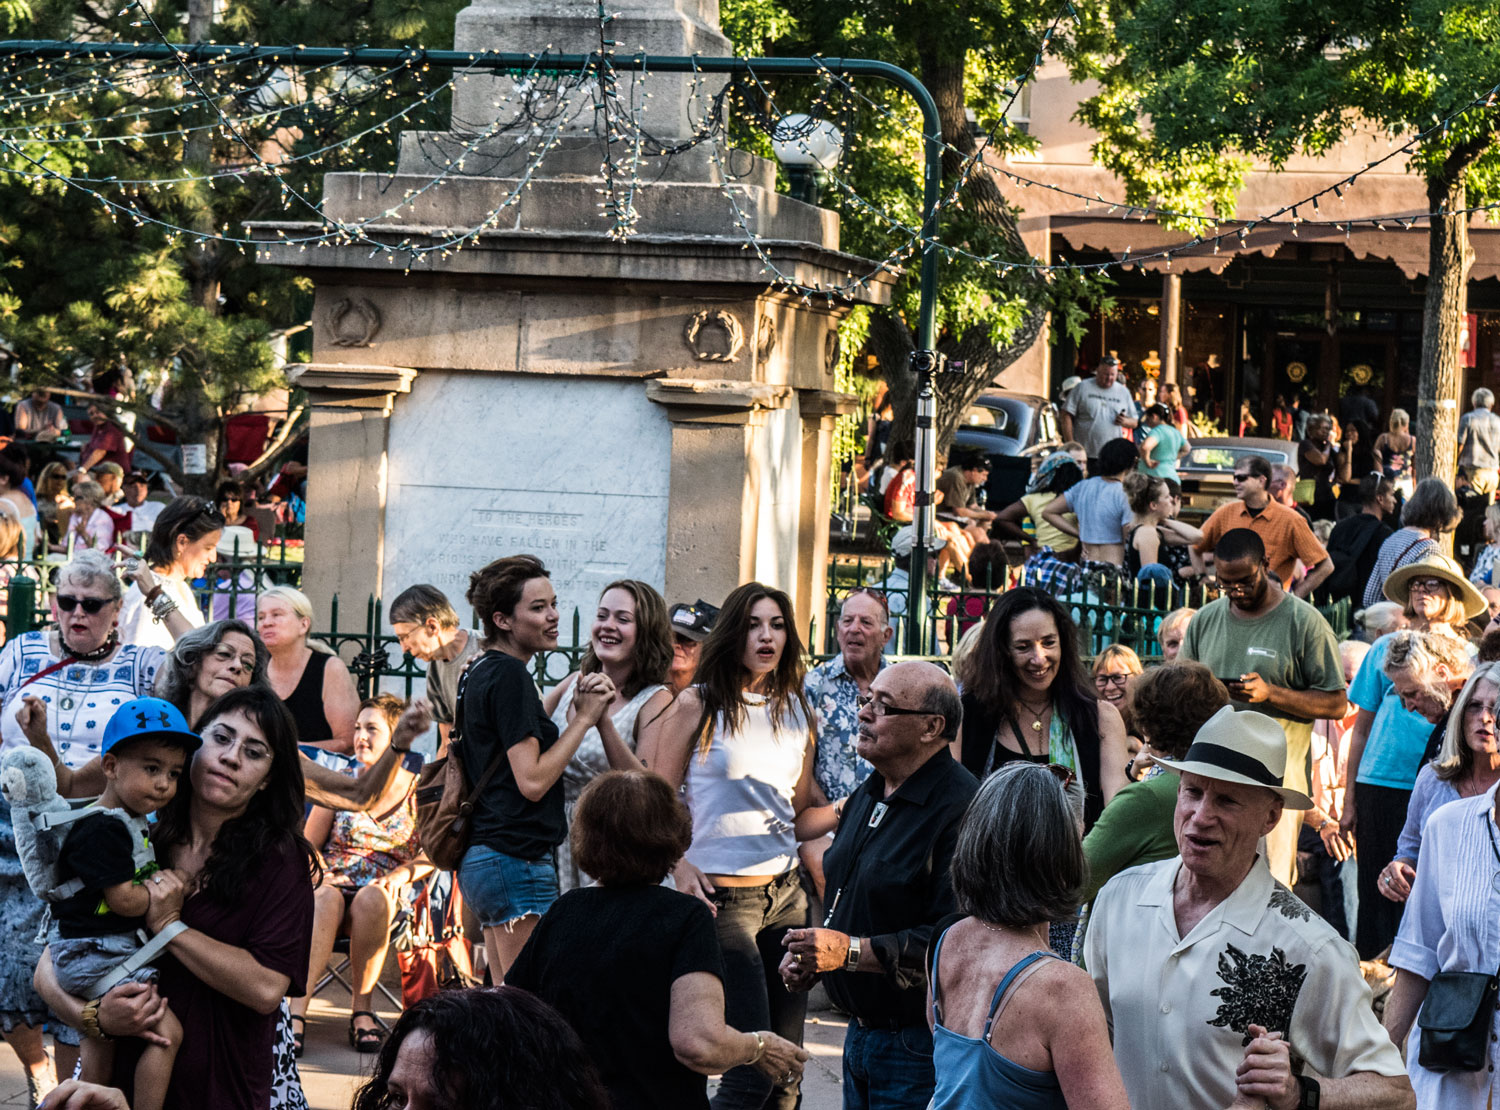 crowd_bandstand_071516_0150